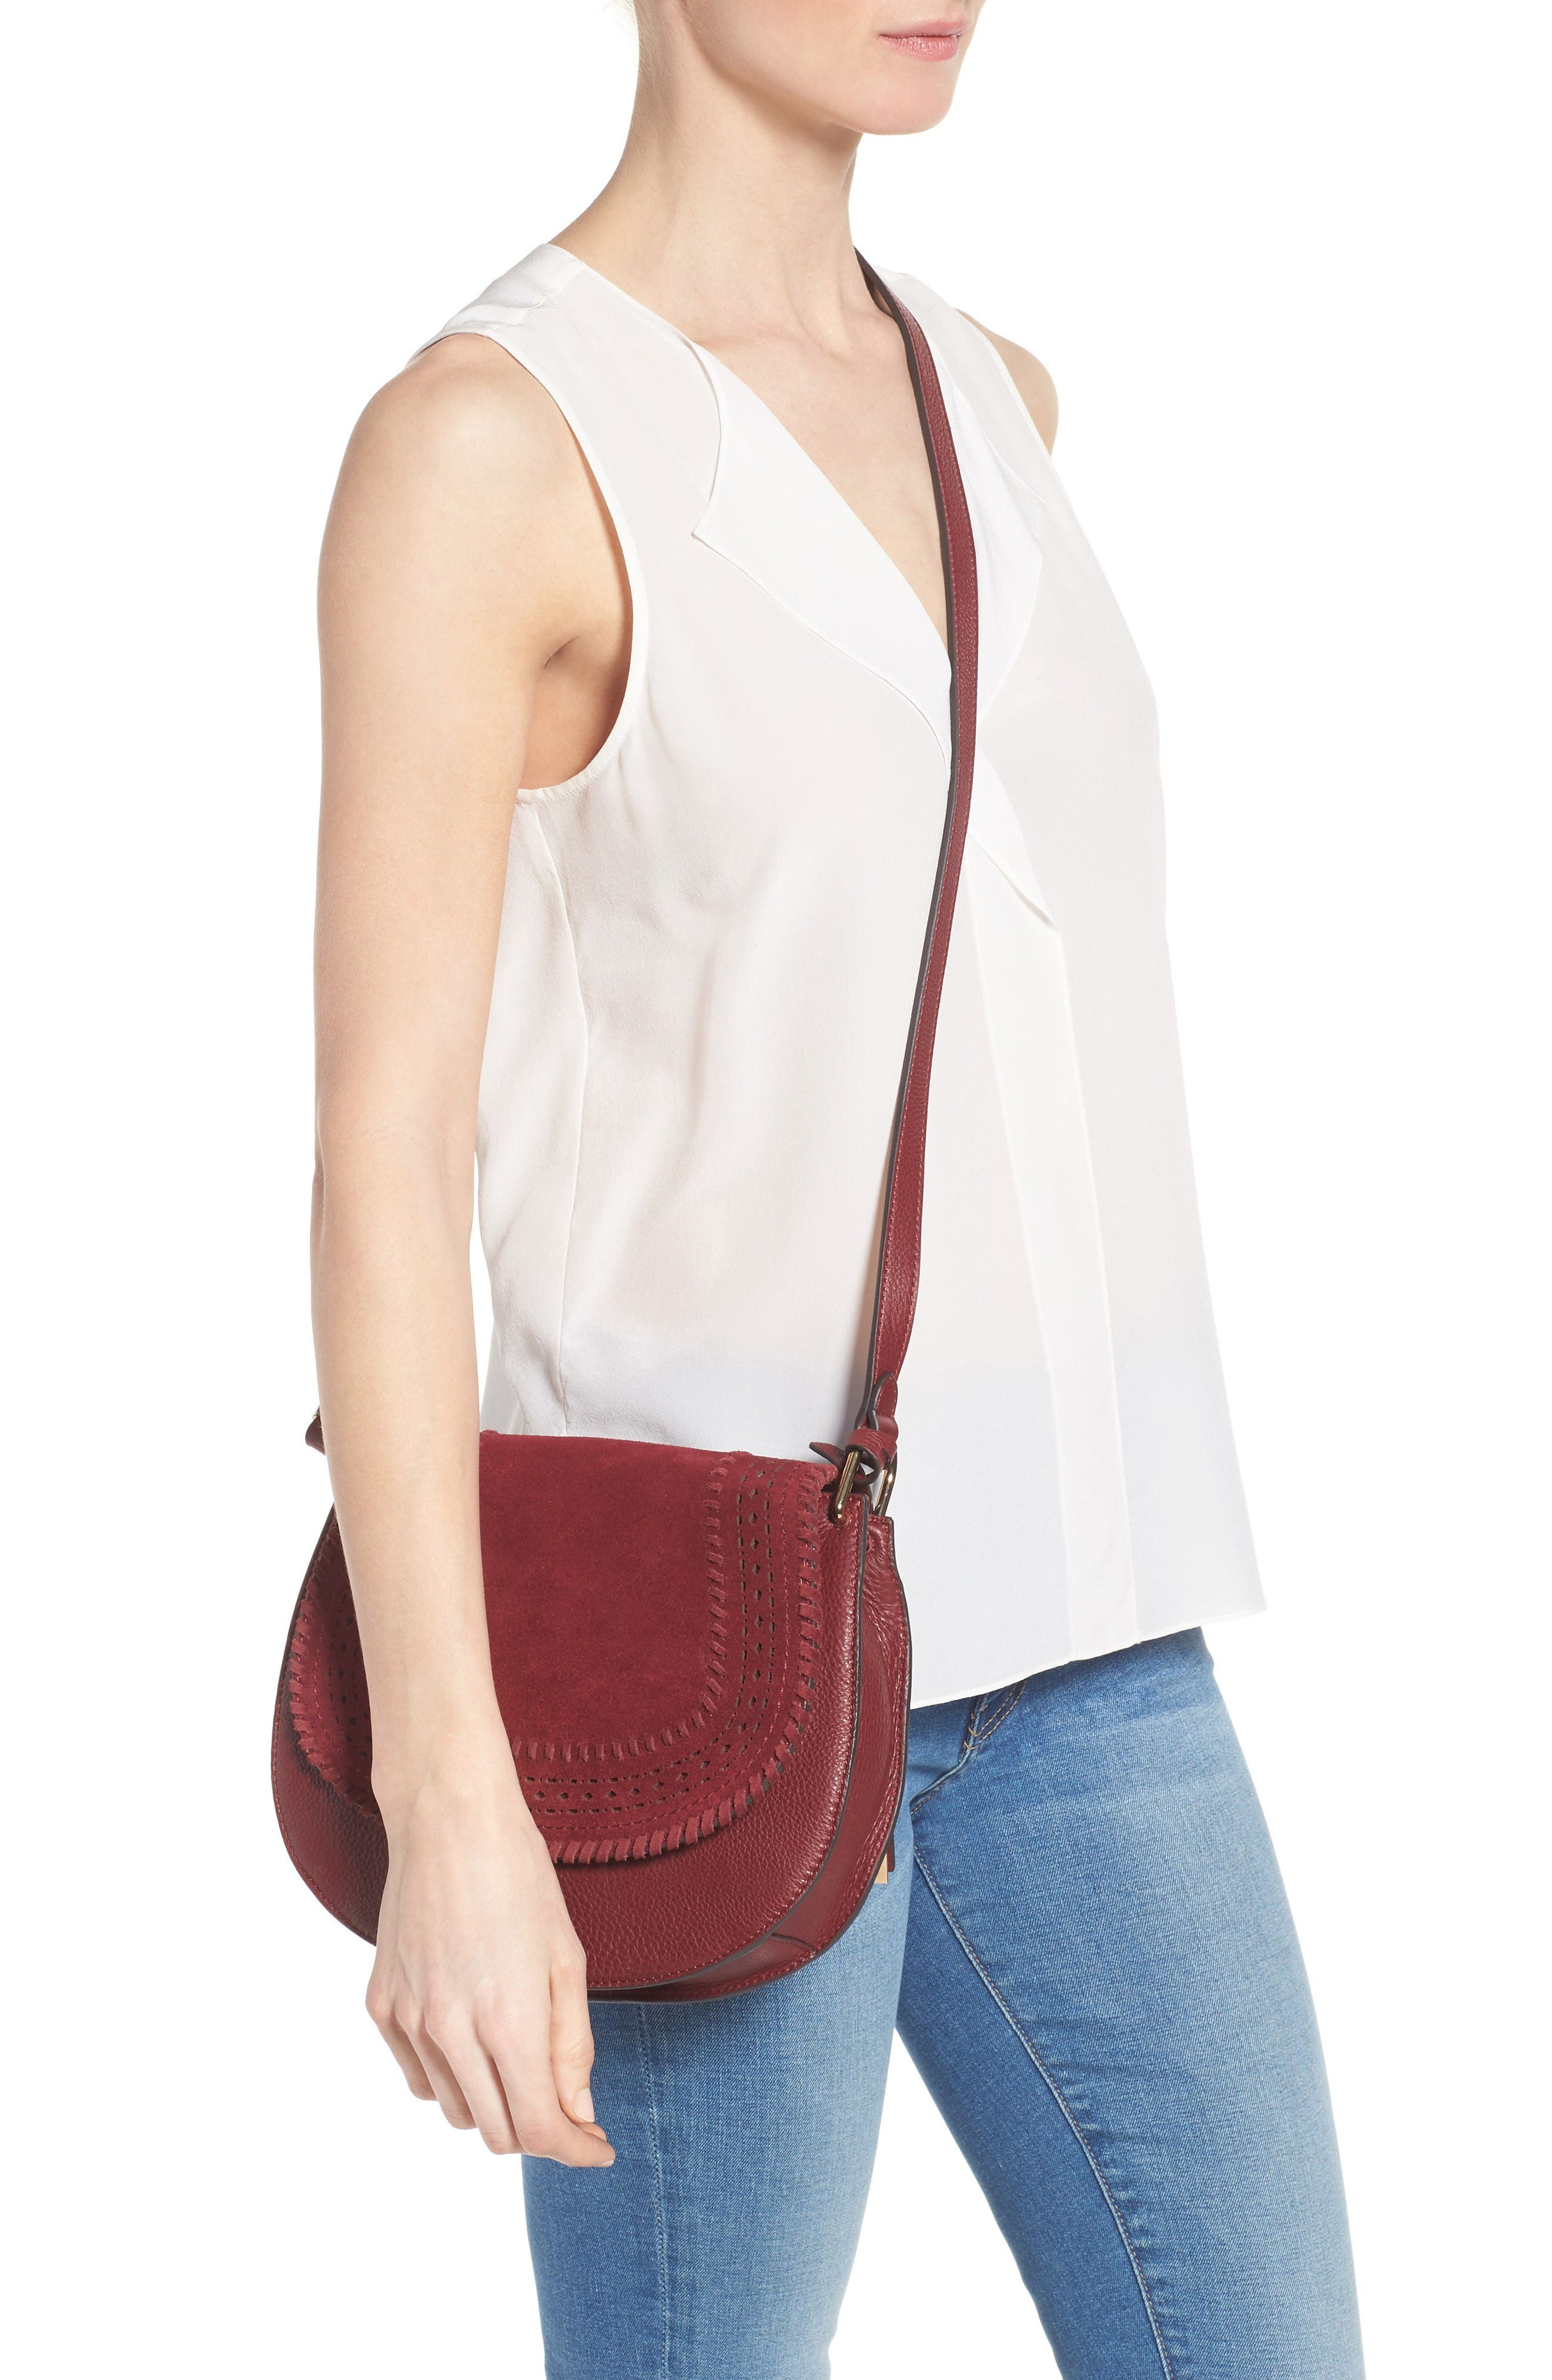 Alternate Image 2  - Vince Camuto Kirie Suede & Leather Crossbody Saddle Bag (Nordstrom Exclusive)